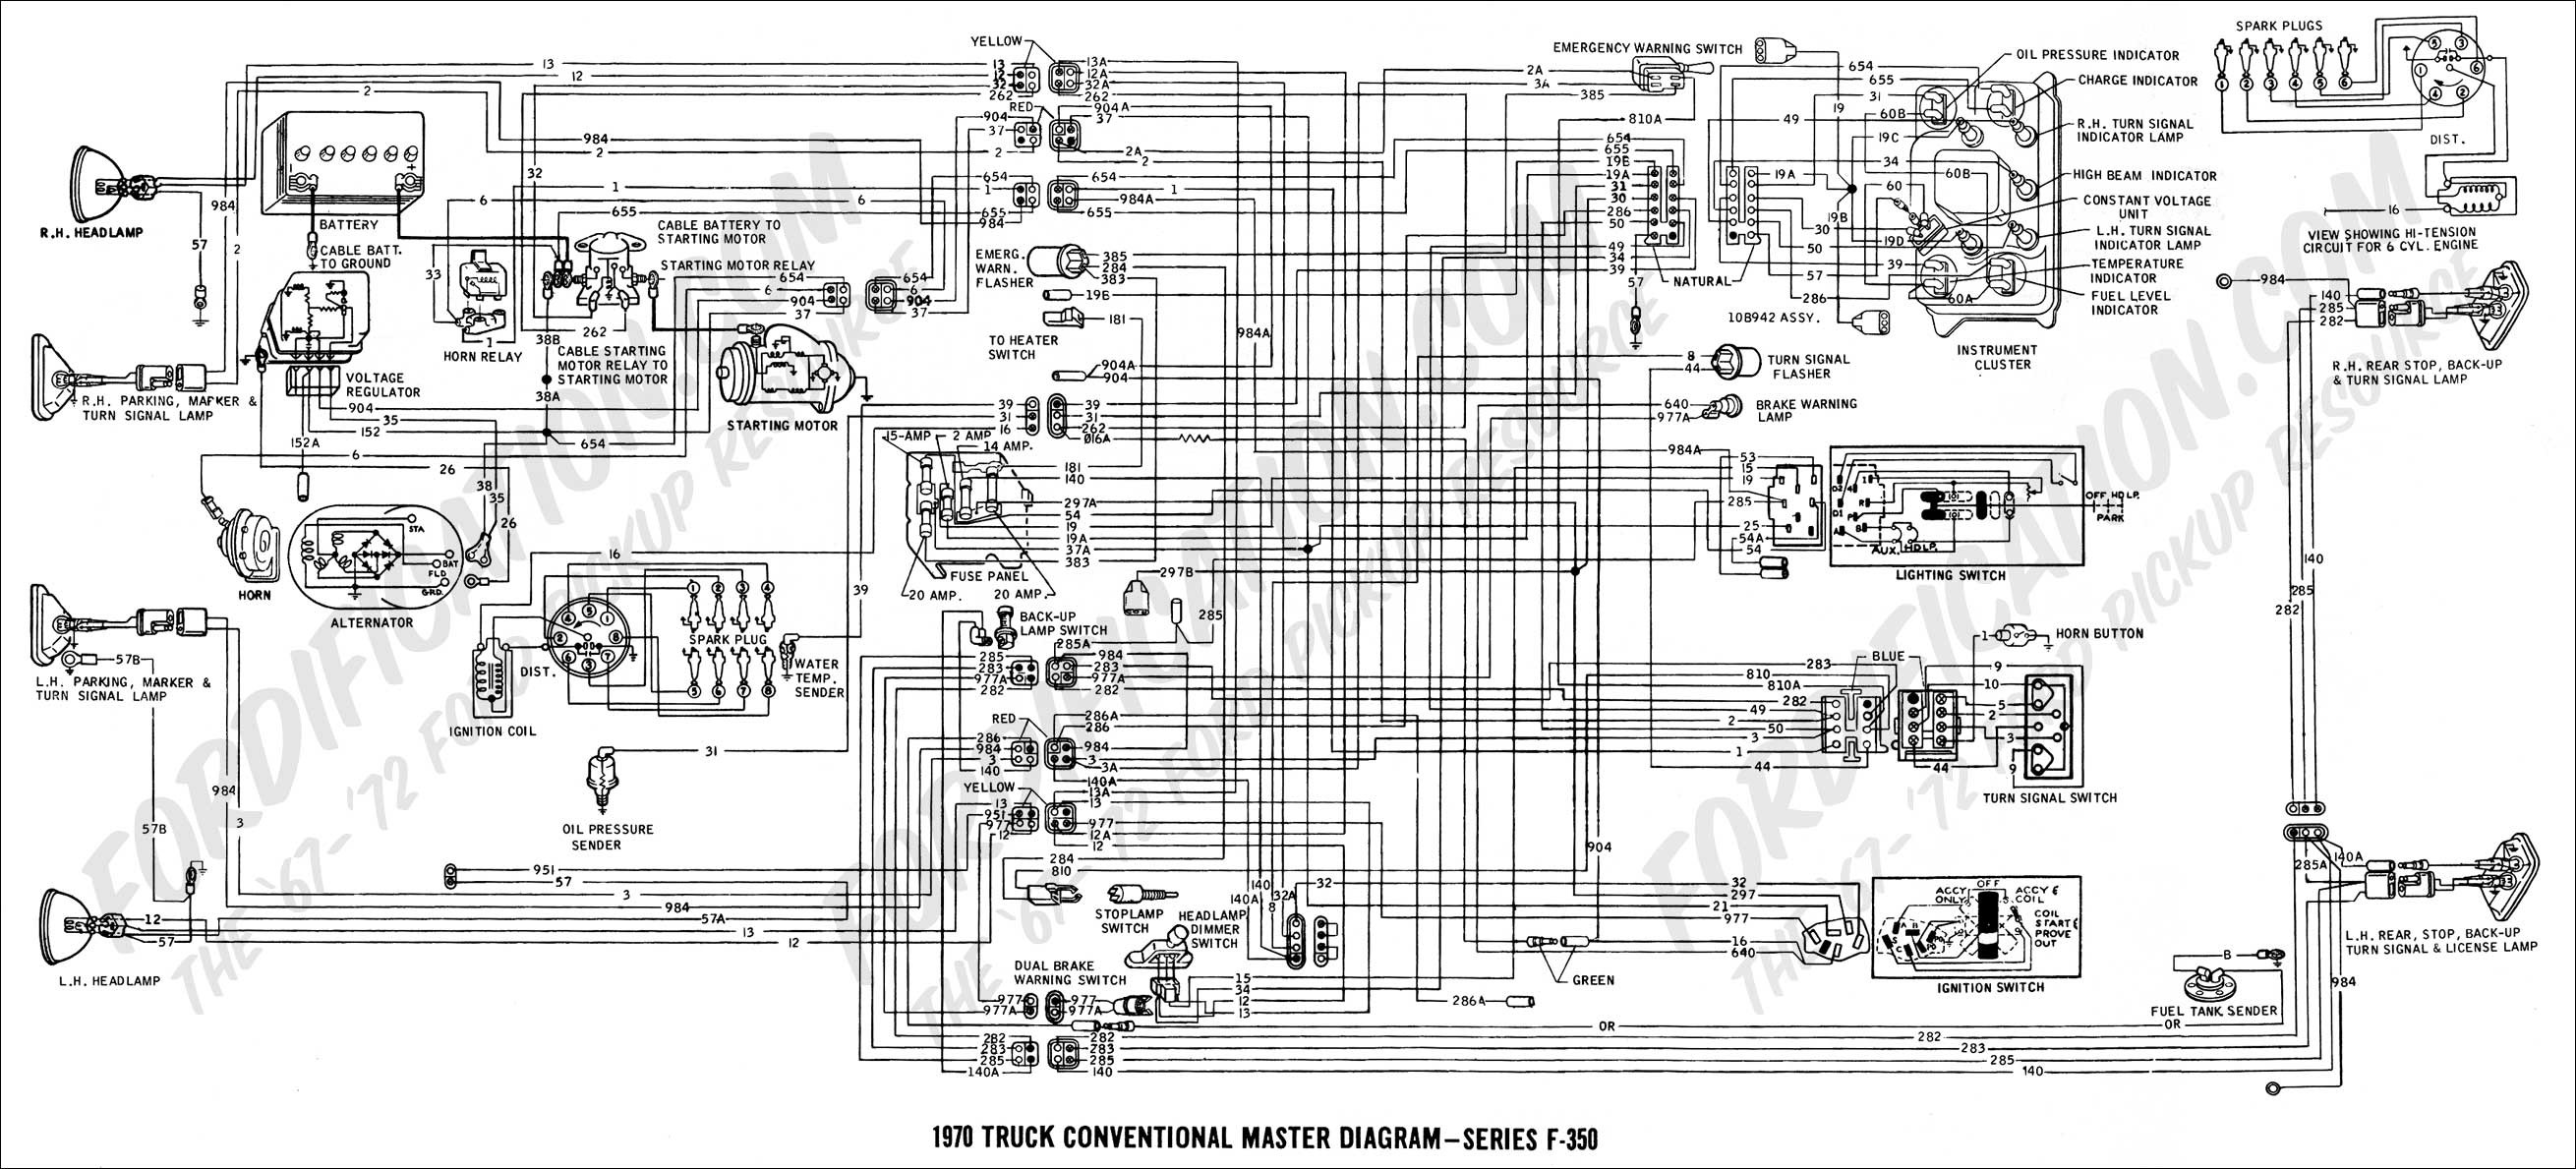 2007 ford Explorer Wiring Diagram ford Truck Technical Drawings and Schematics Section H Wiring Fair Of 2007 ford Explorer Wiring Diagram